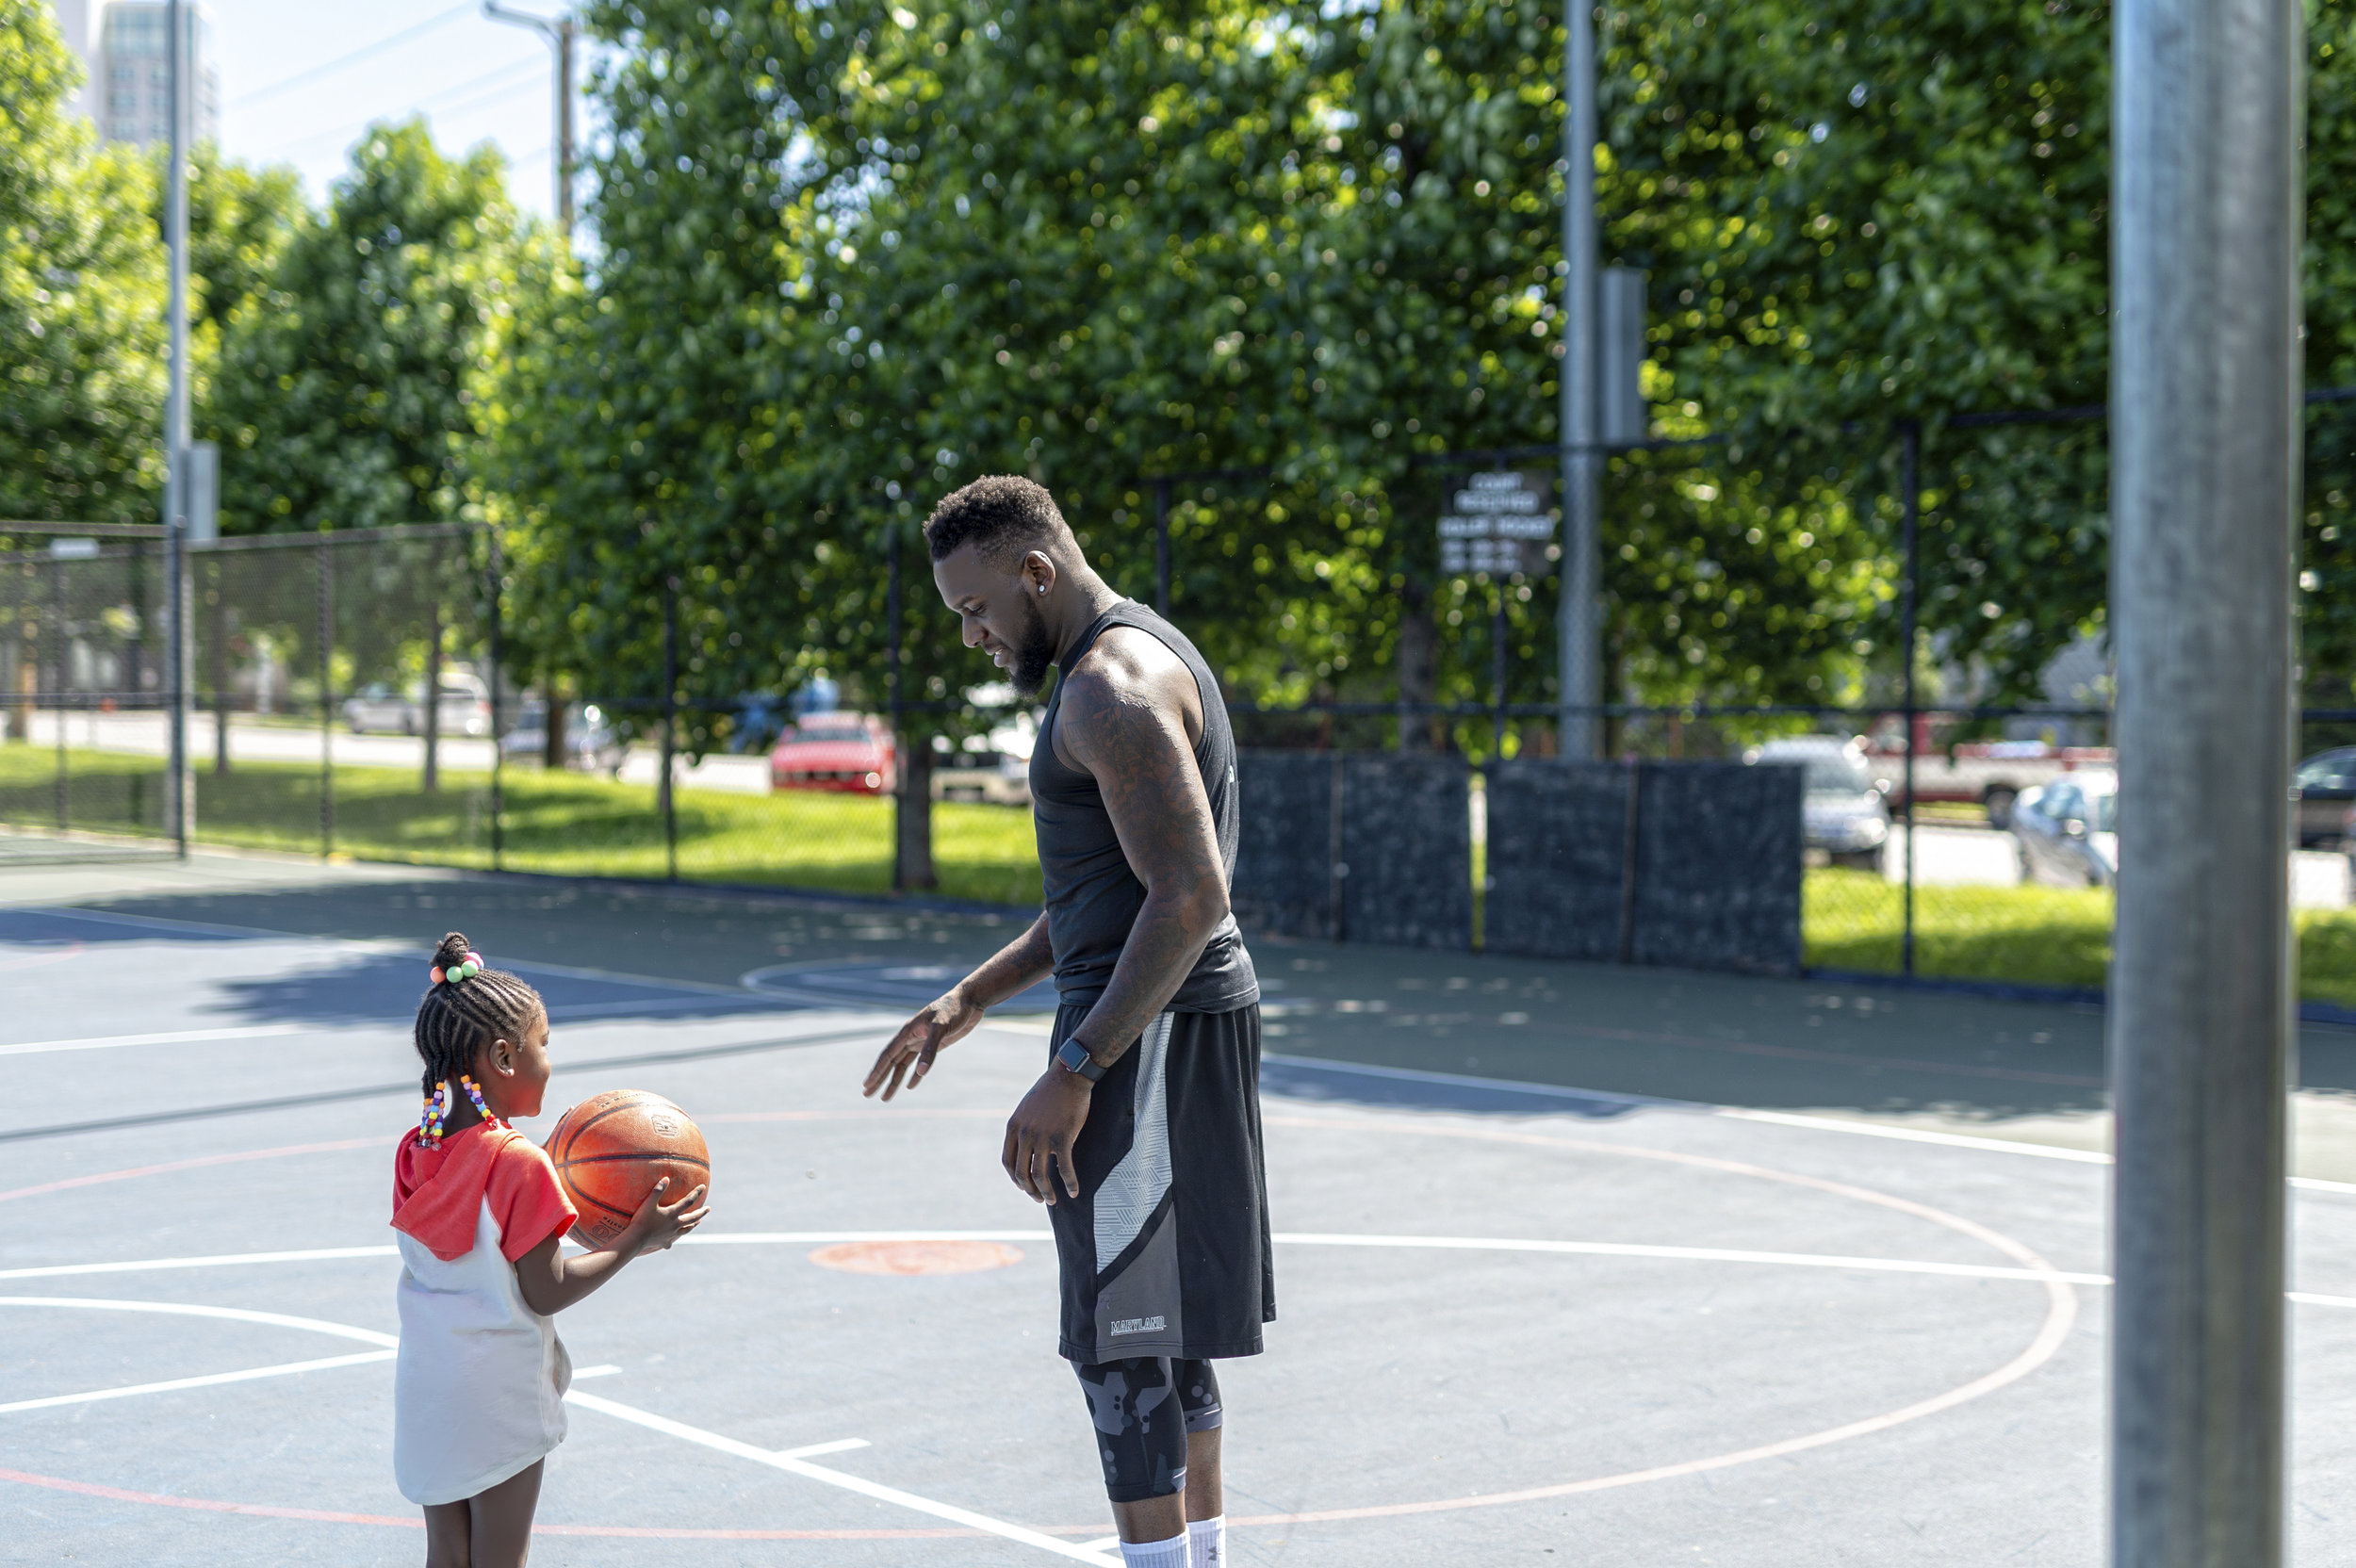 FATHER-DAUGHTER-BASKETBALL-THEMBOLDENS-FAMILY2.jpg